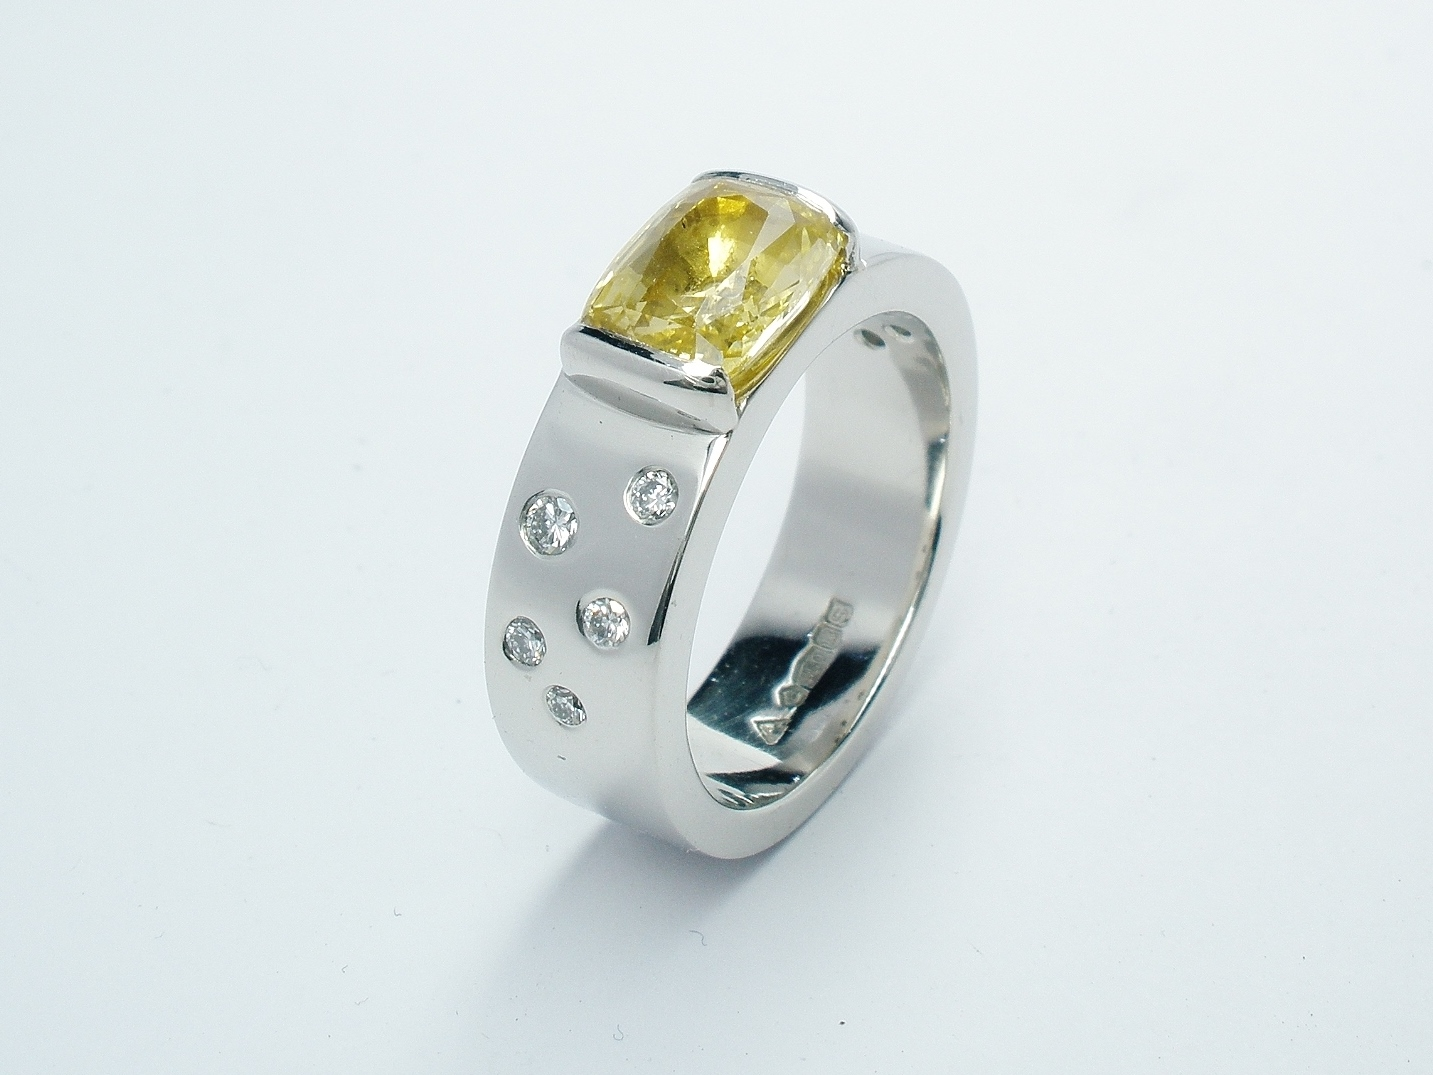 A rectangular cushion cut yellow sapphire and flush set round brilliant cut diamonds mounted in platinum.